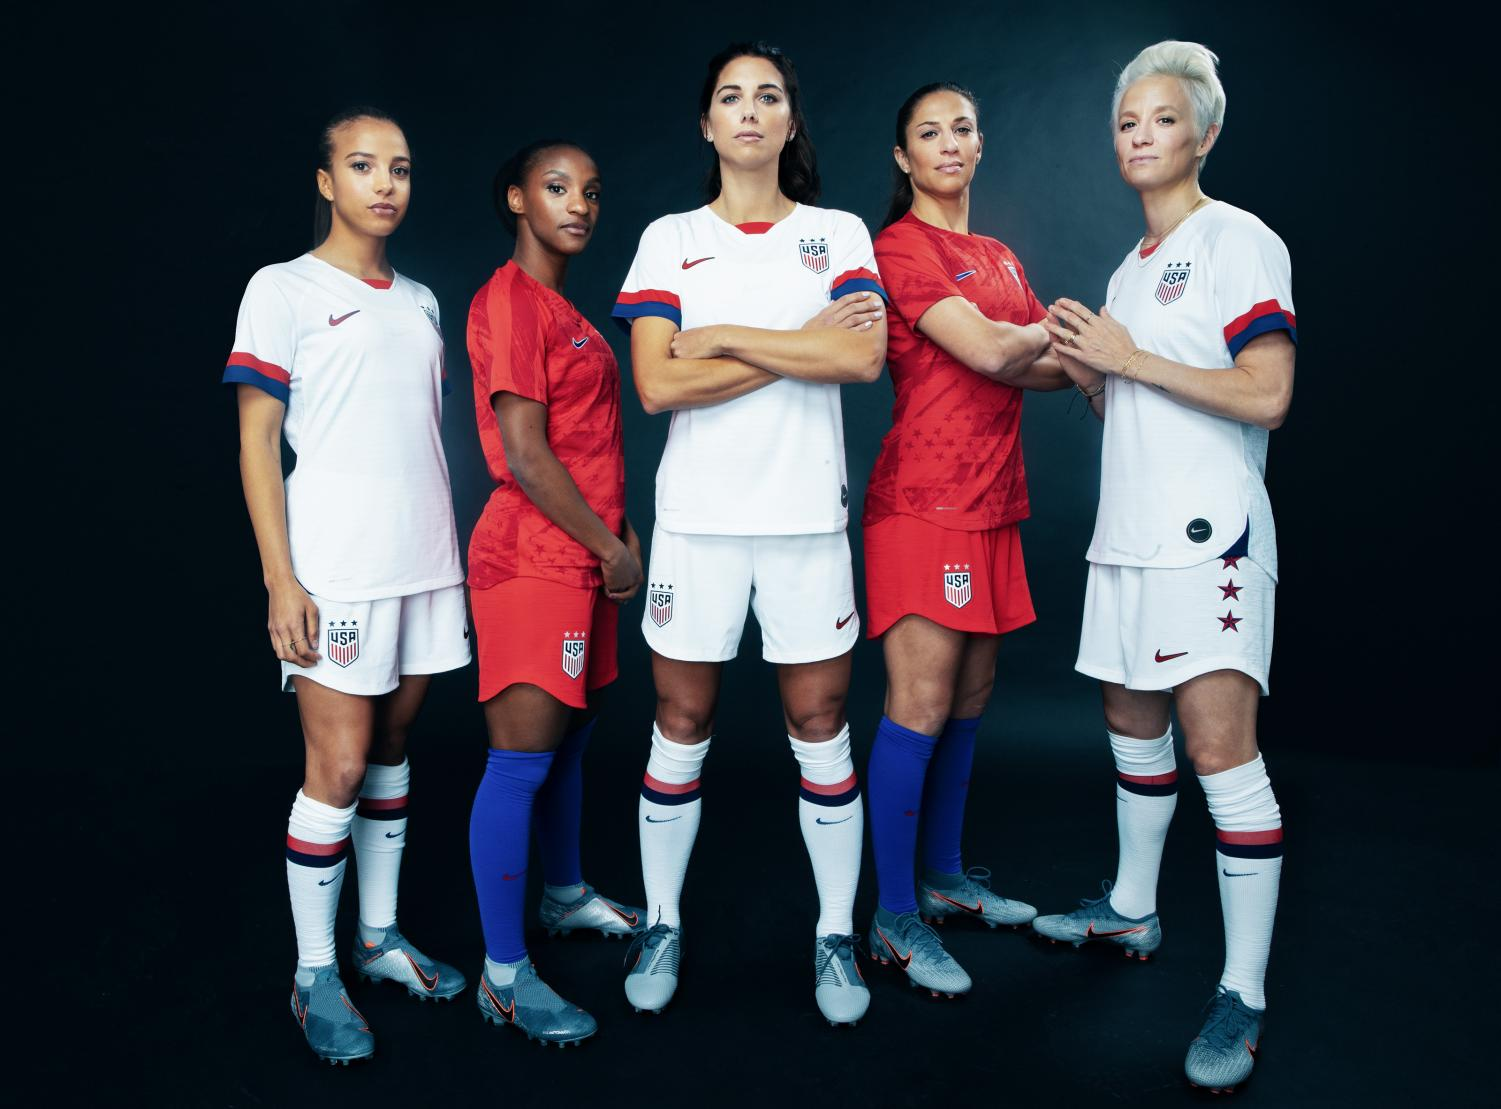 (left to right) Mallory Pugh, Crystal Dunn, Alex Morgan, Carli Lloyd and Megan Rapinoe wear new USA women's World Cup jerseys.